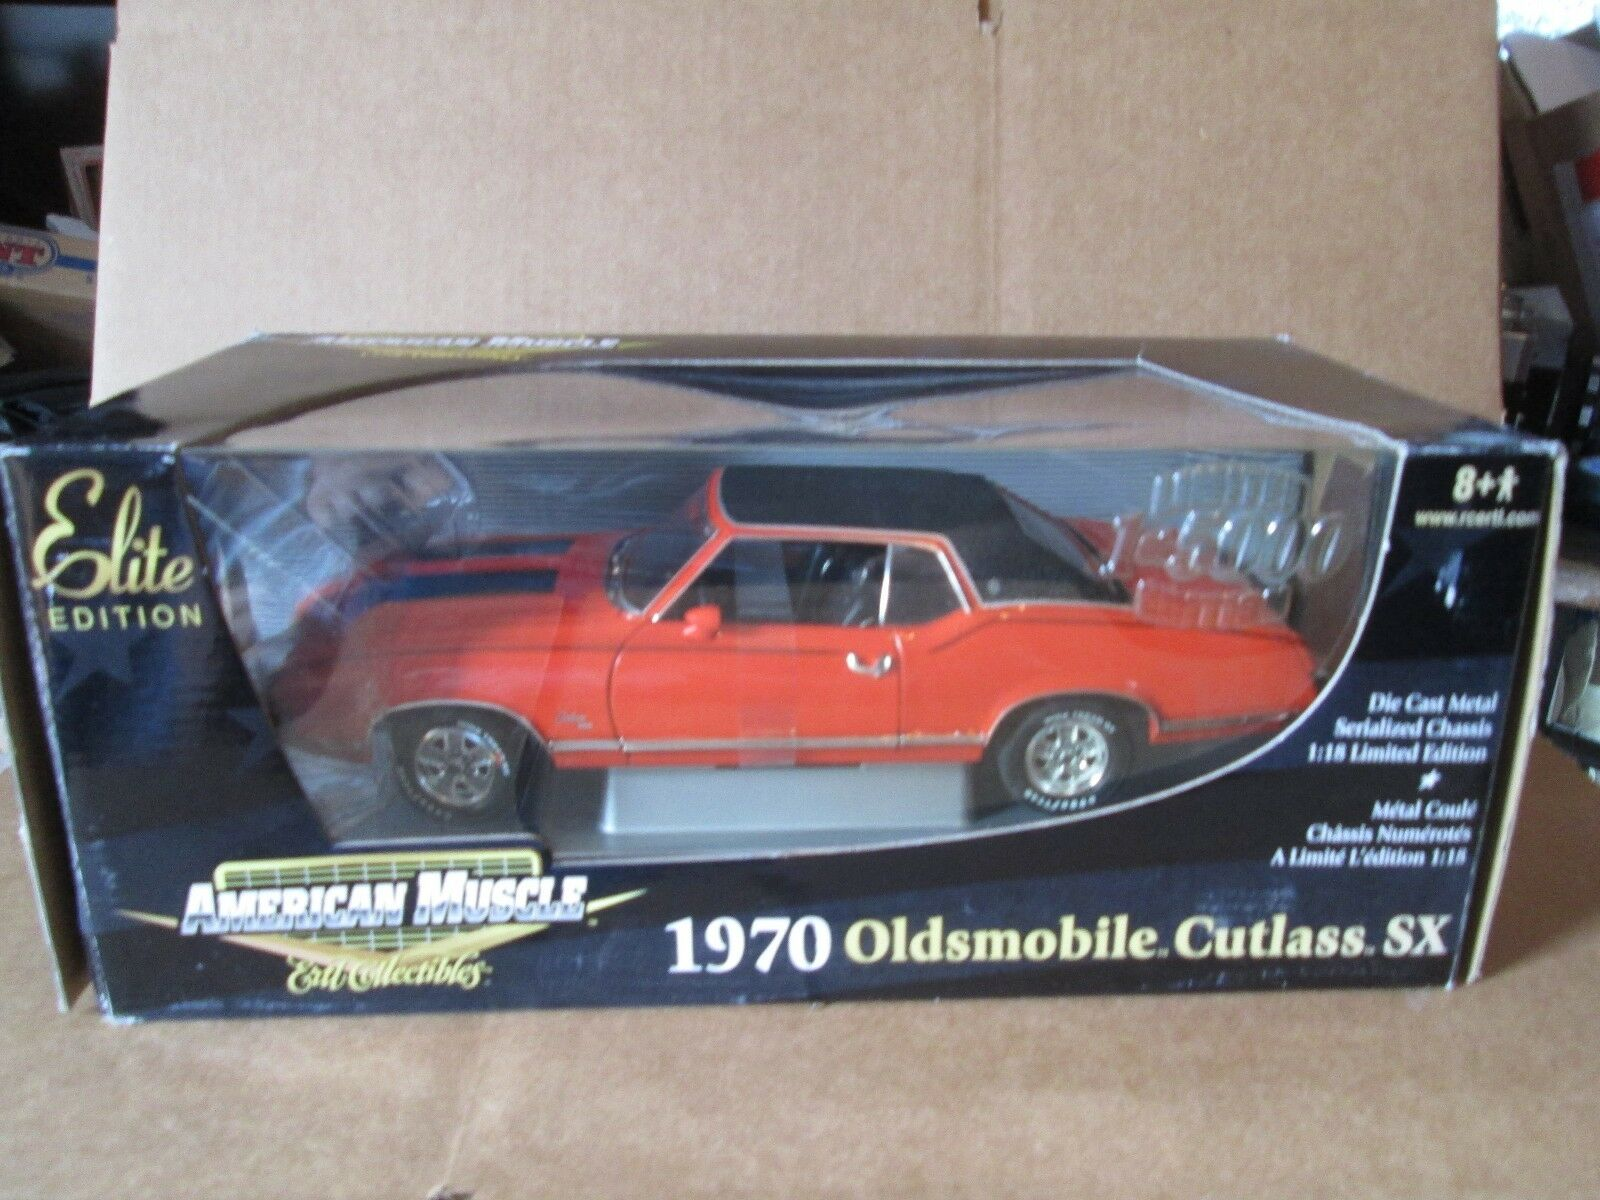 J1970 Oldsmobile Cutlass SX Orange American Muscle Elite ED.1 18 LTD ED ERTL